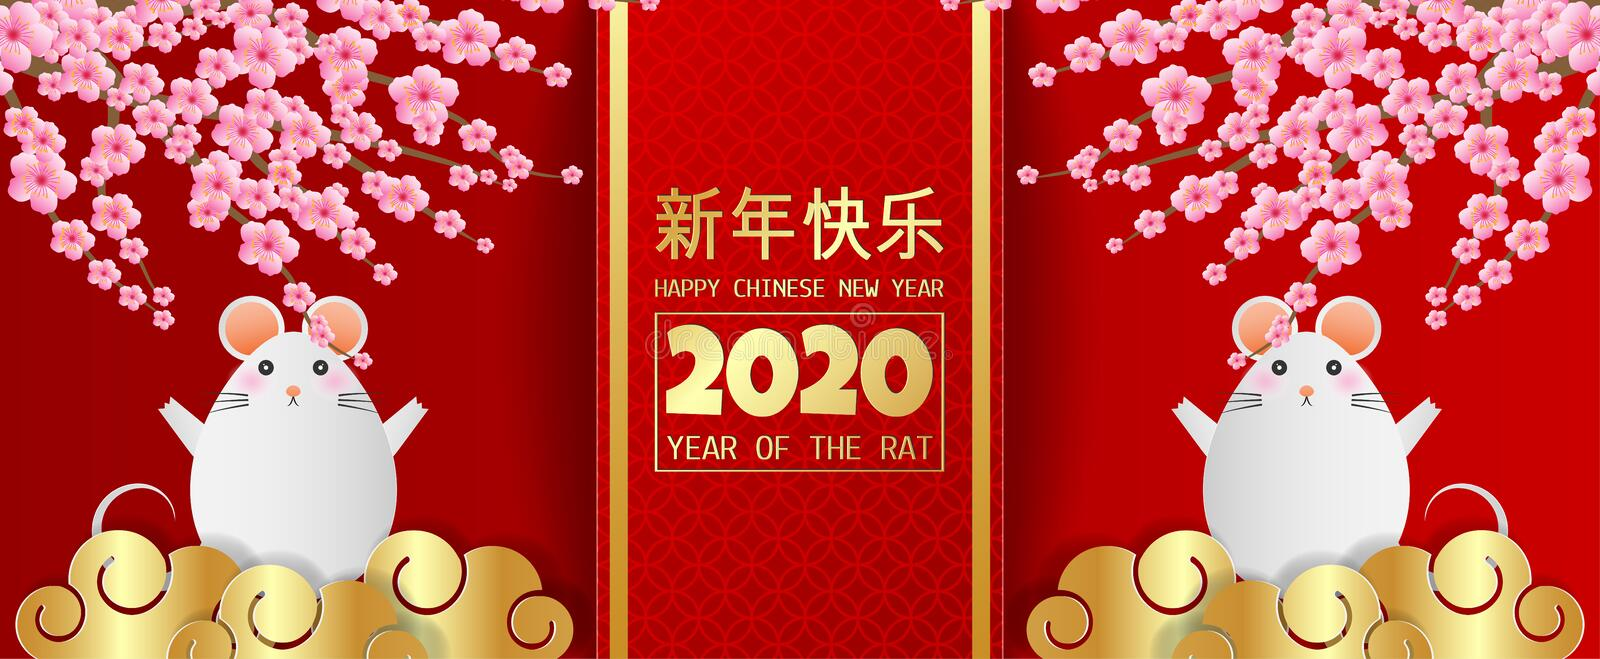 Happy chinese new year 2020 year of the rat greeting card with cute rat and cherry blossom on red background, Paper art style. royalty free stock image